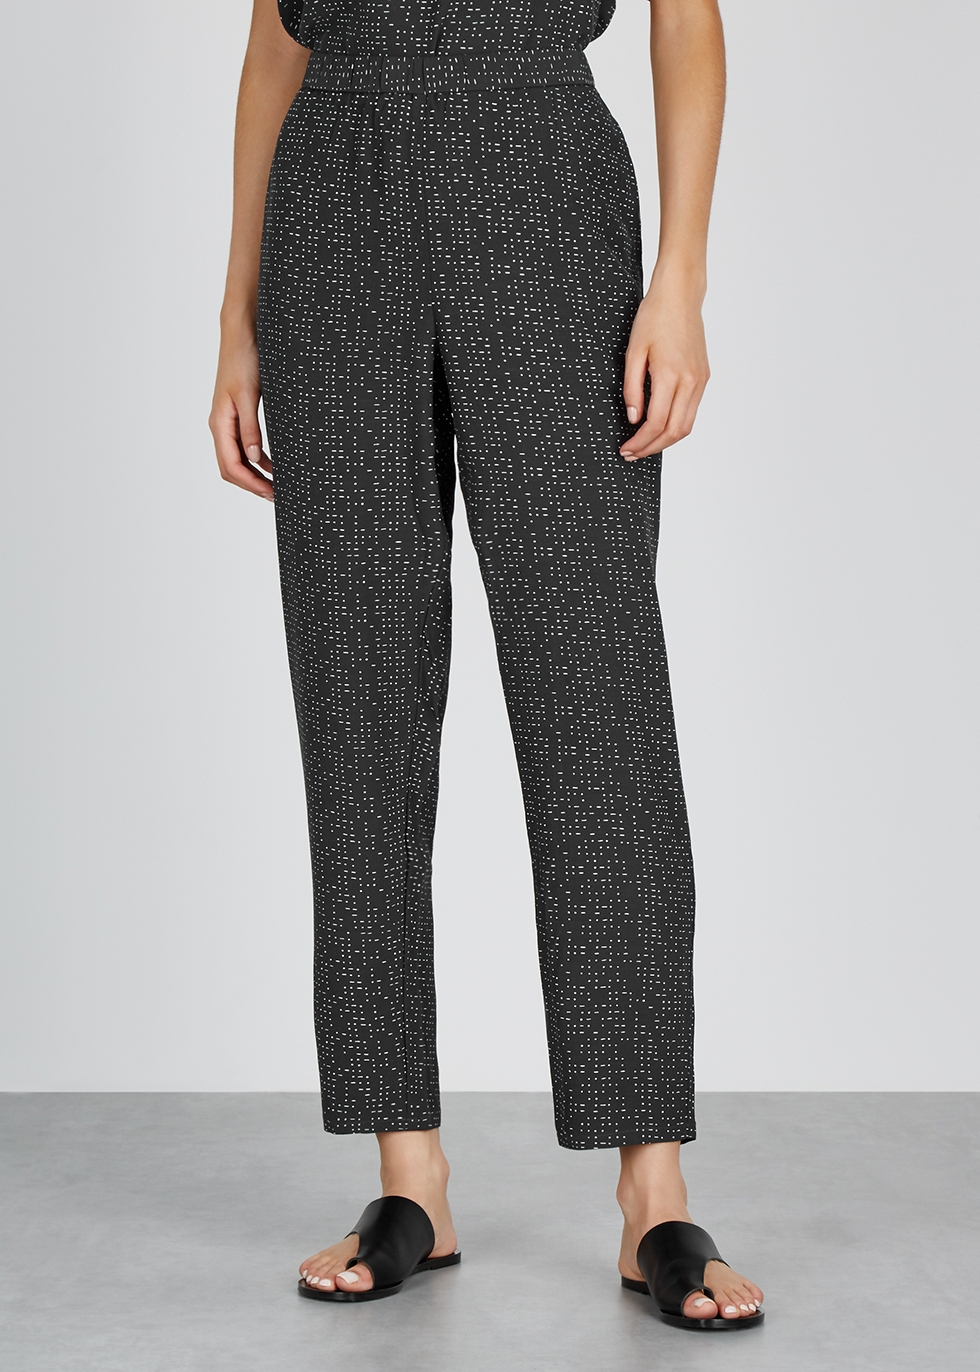 Printed crepe de chine trousers - EILEEN FISHER